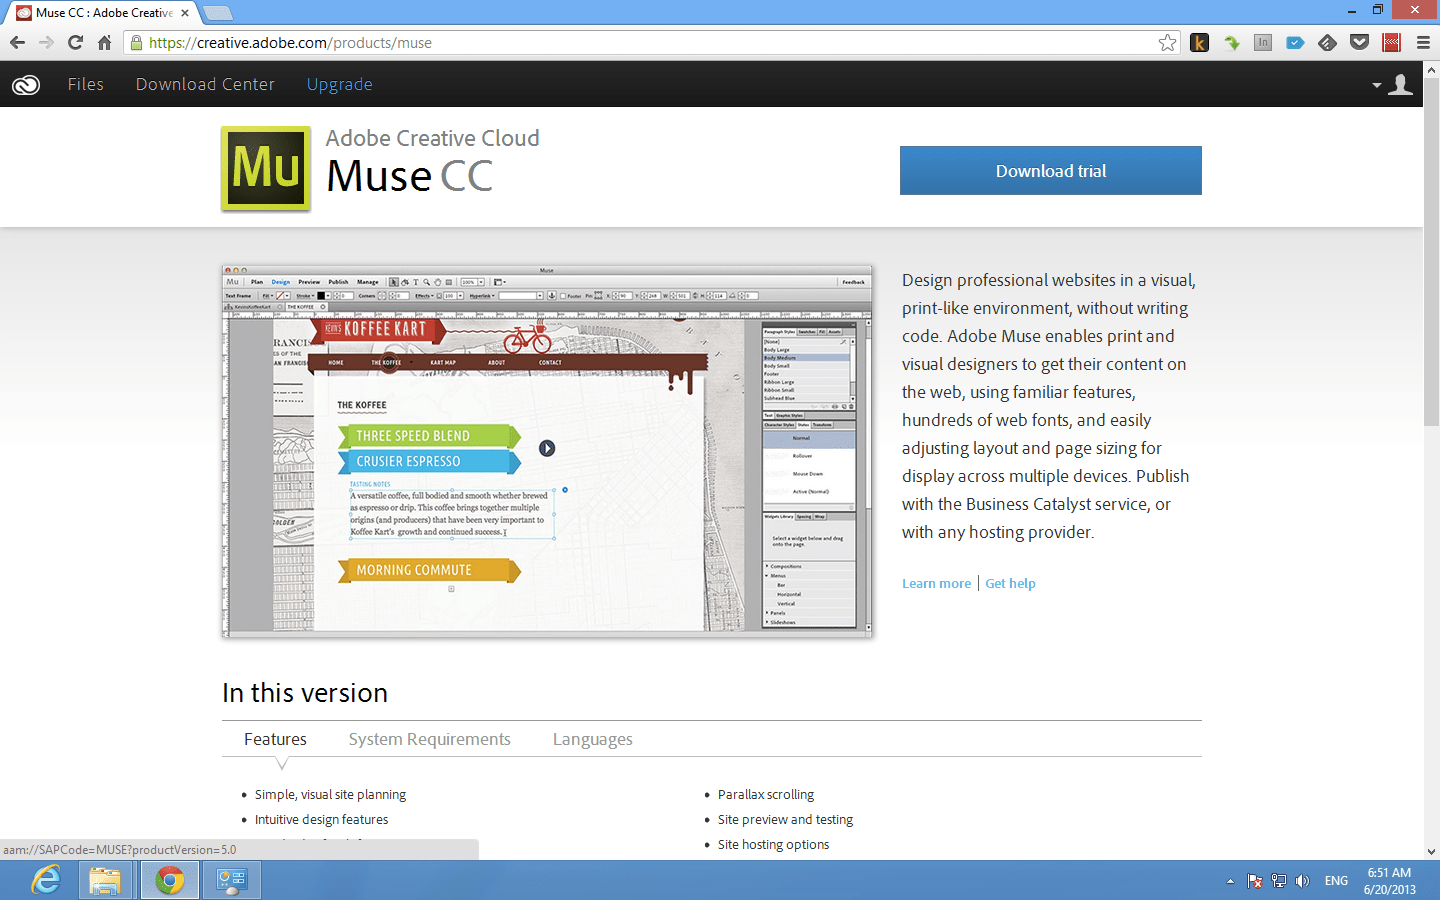 Adobe Muse CC Download page